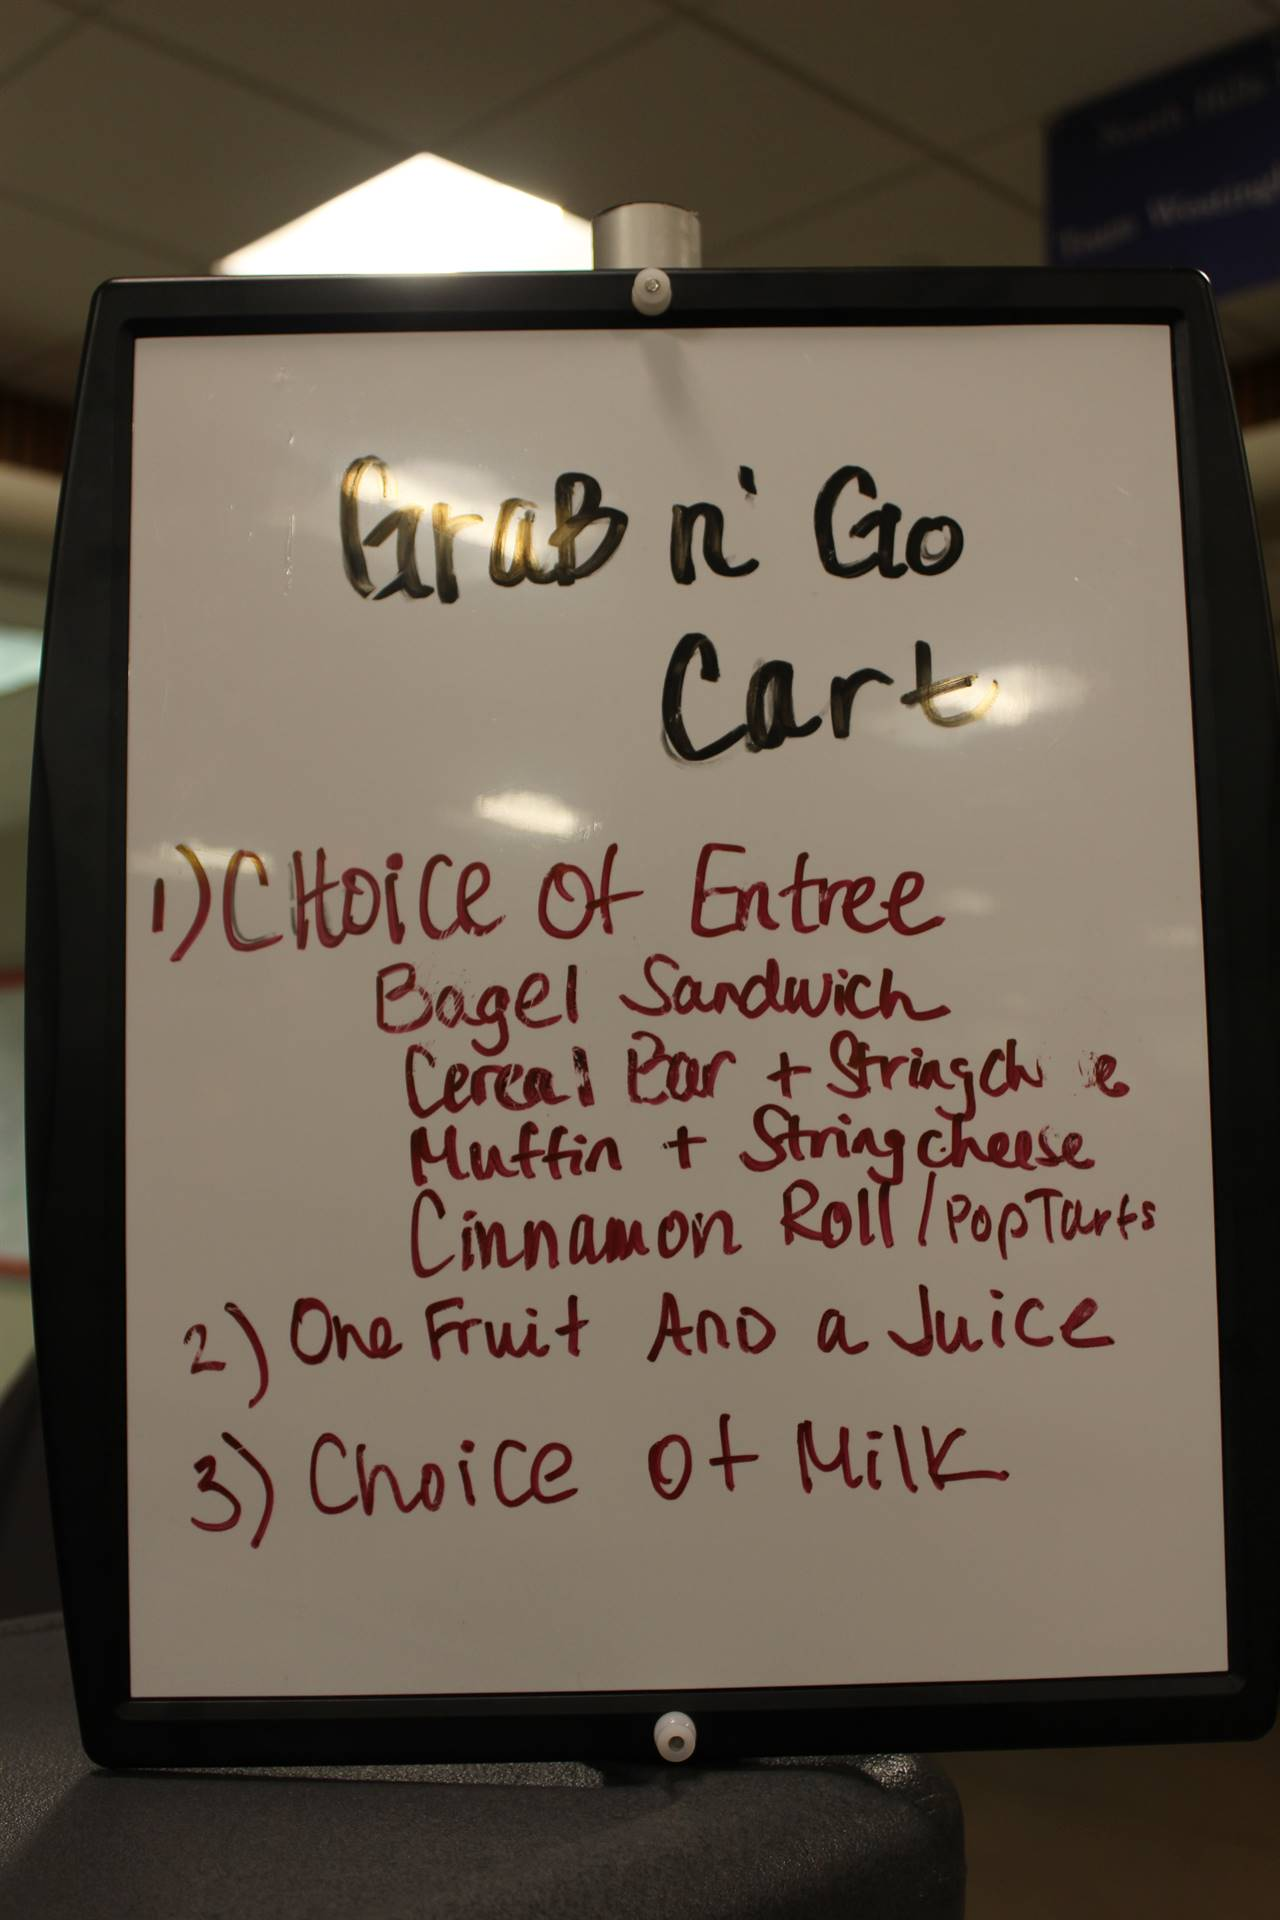 Photo of Menu for Breakfast from New Cart